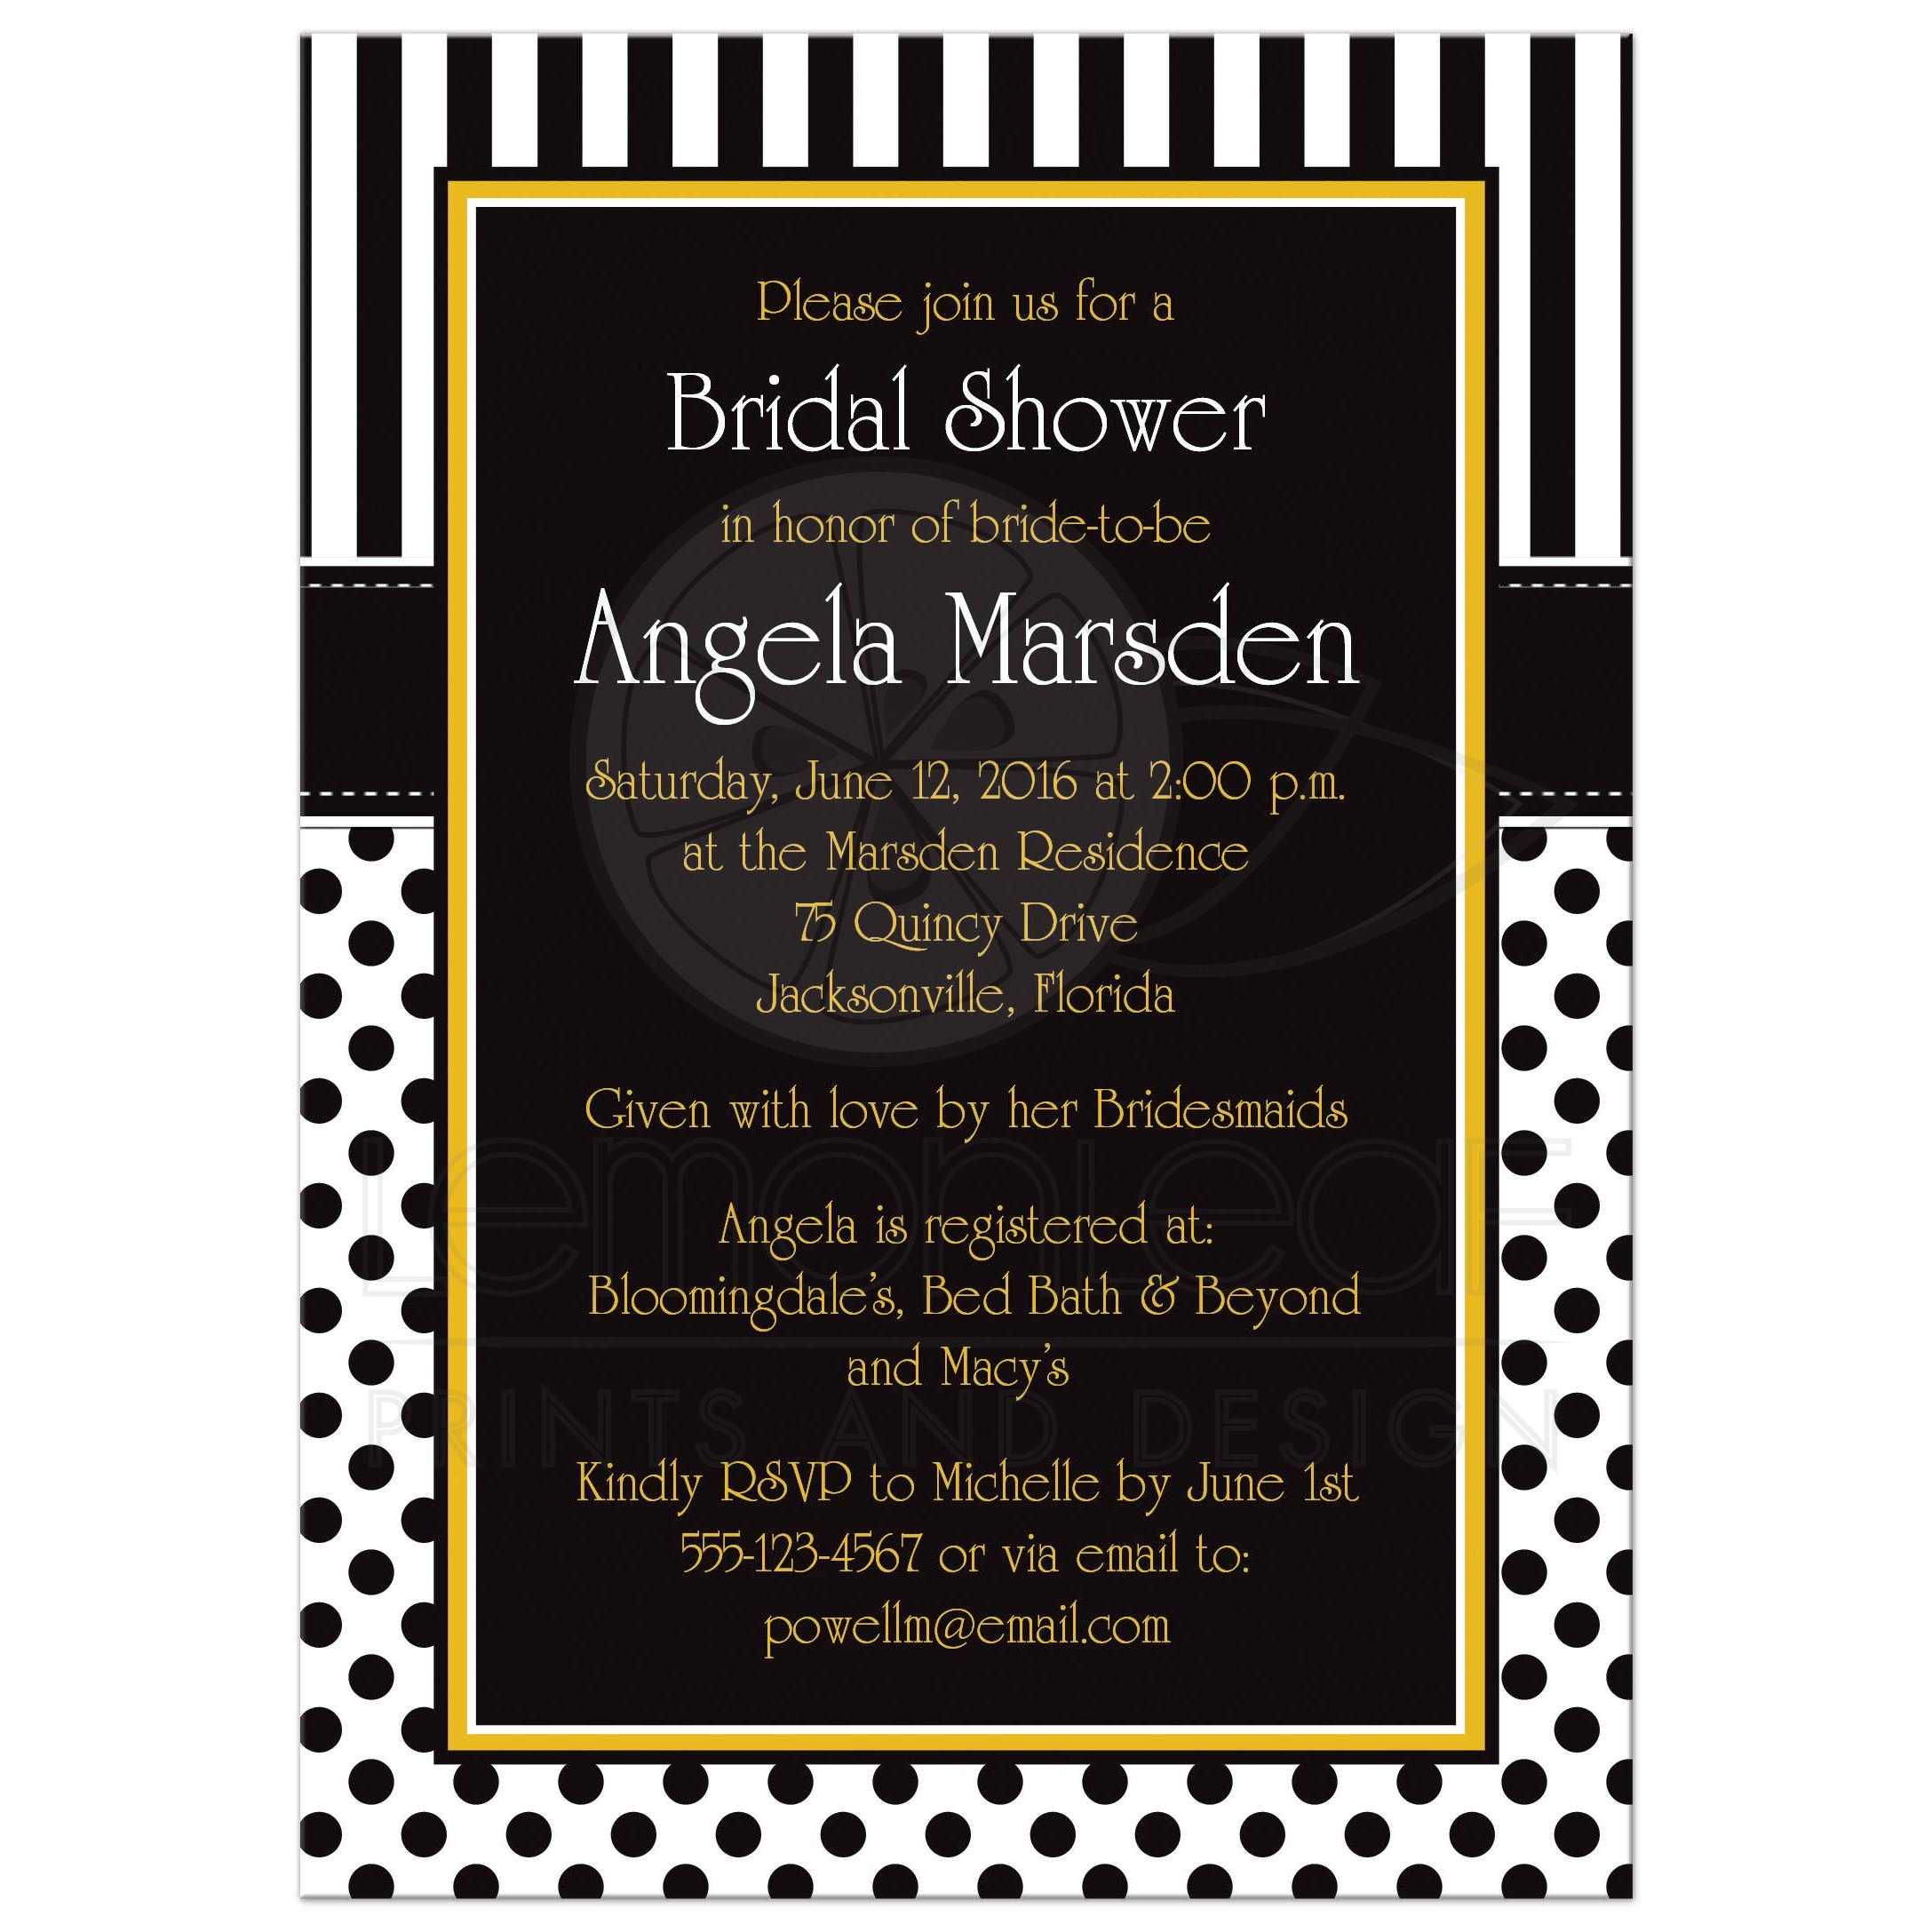 Bridal shower invitation black white yellow polka dots and stripes black and white striped bridal or wedding shower invites with polka dots and yellow filmwisefo